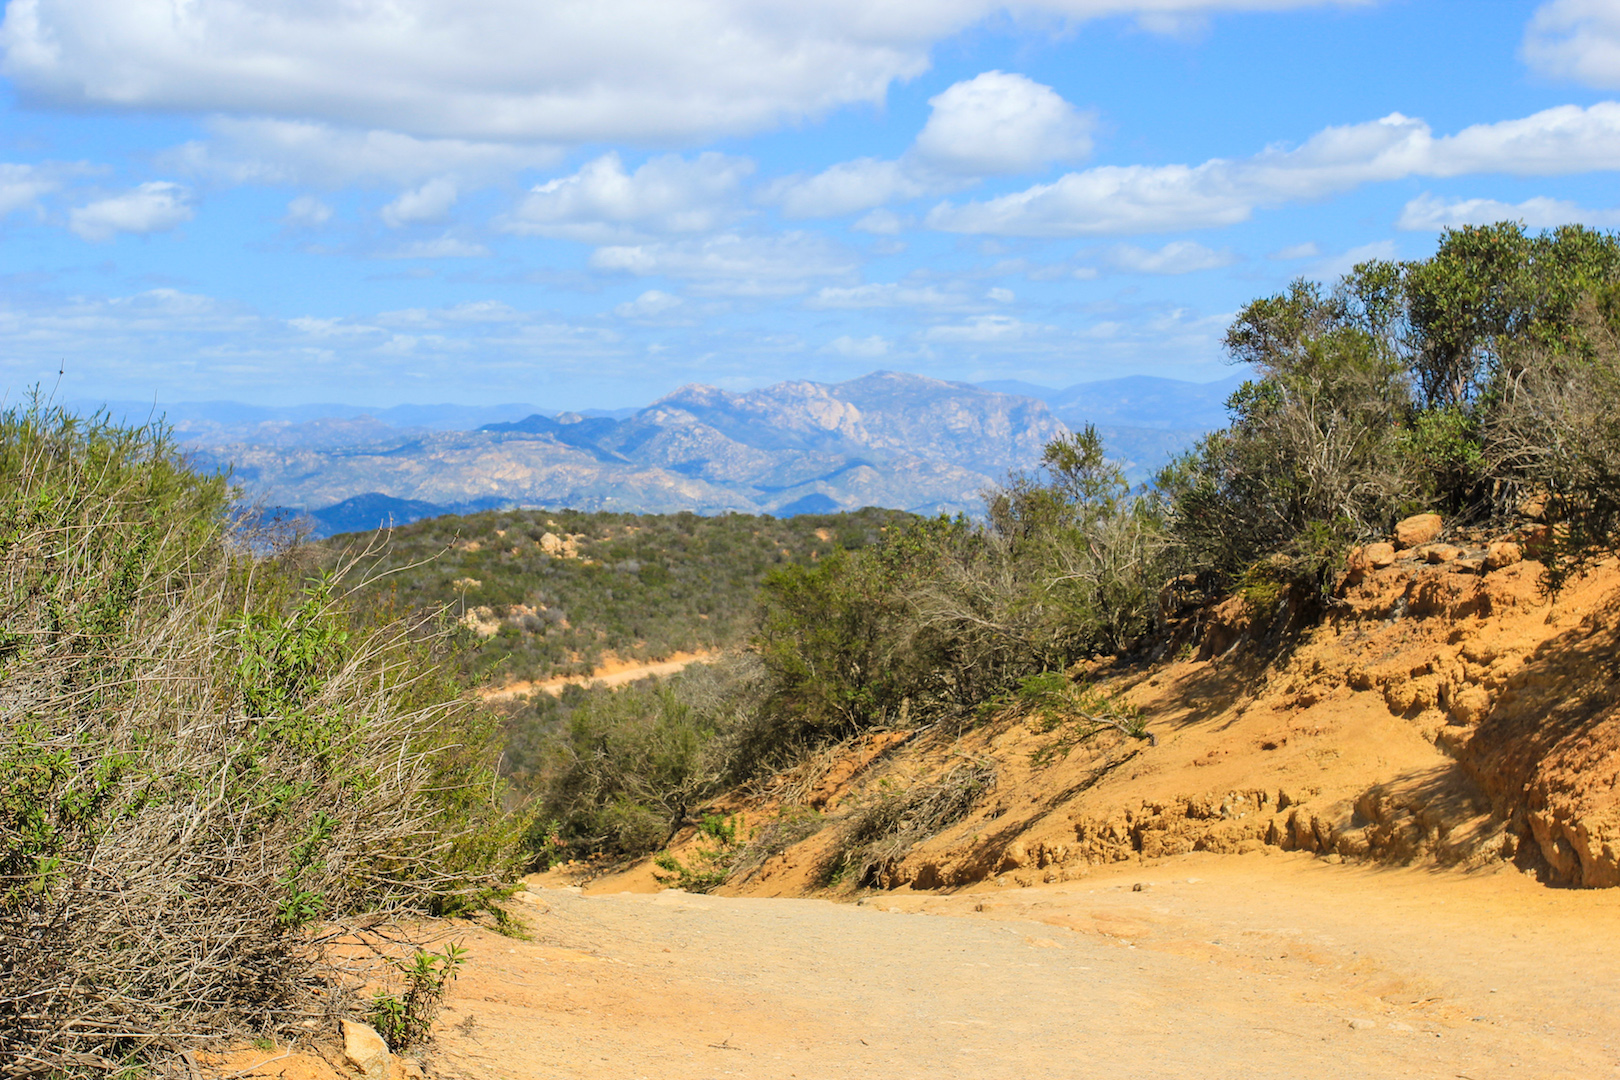 Big Rock Hiking Trail at Cowles Mountain in San Diego, CA